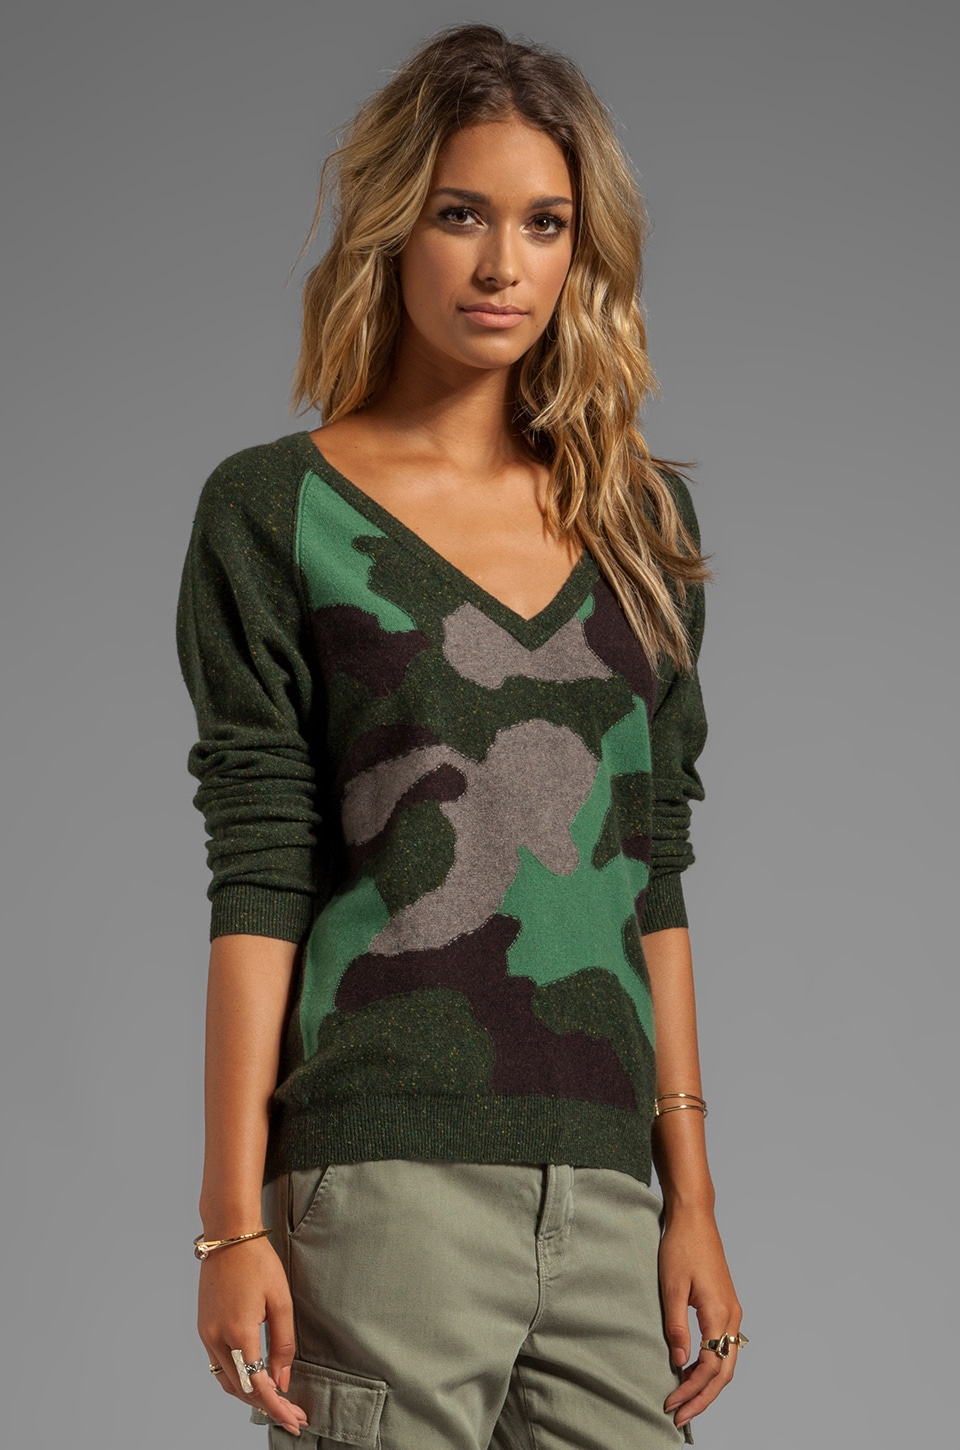 Autumn Cashmere Camo V Neck Sweater in Spruce Combo